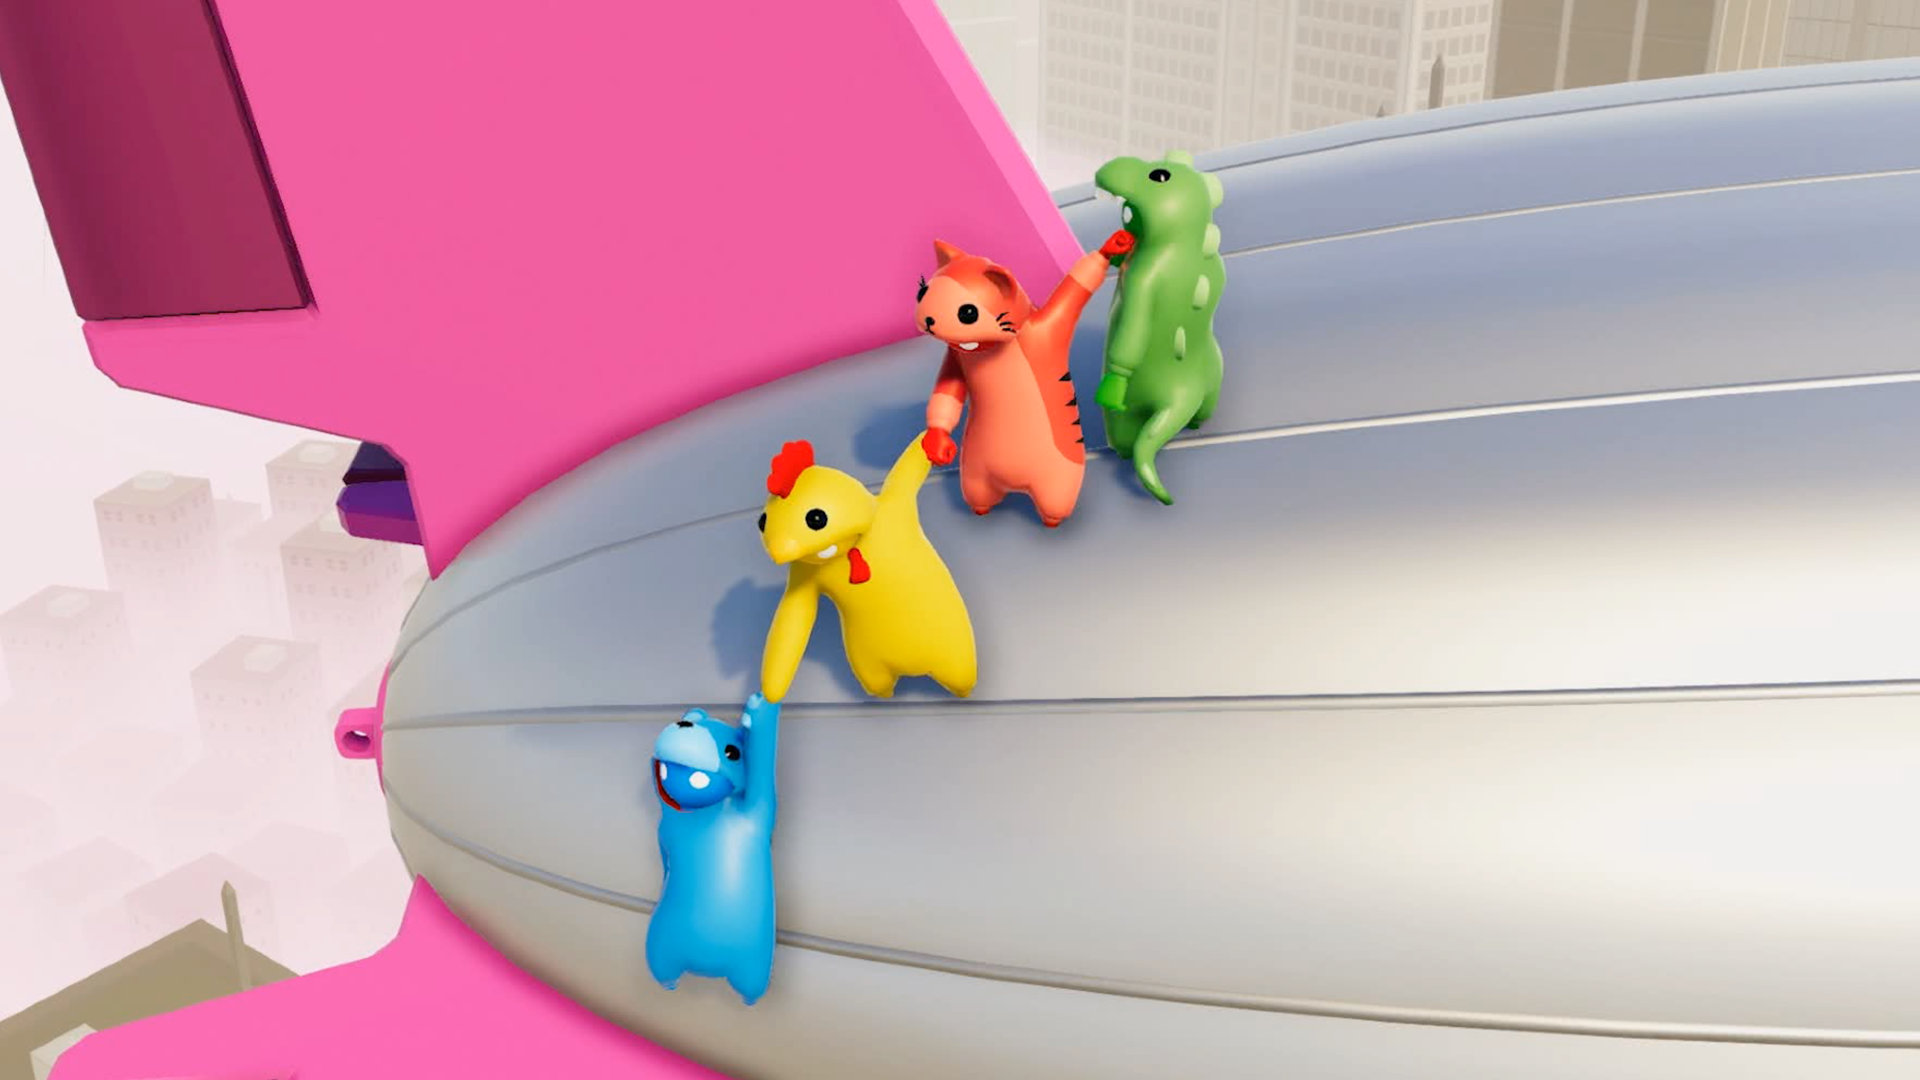 Come scaricare gang beasts ps4